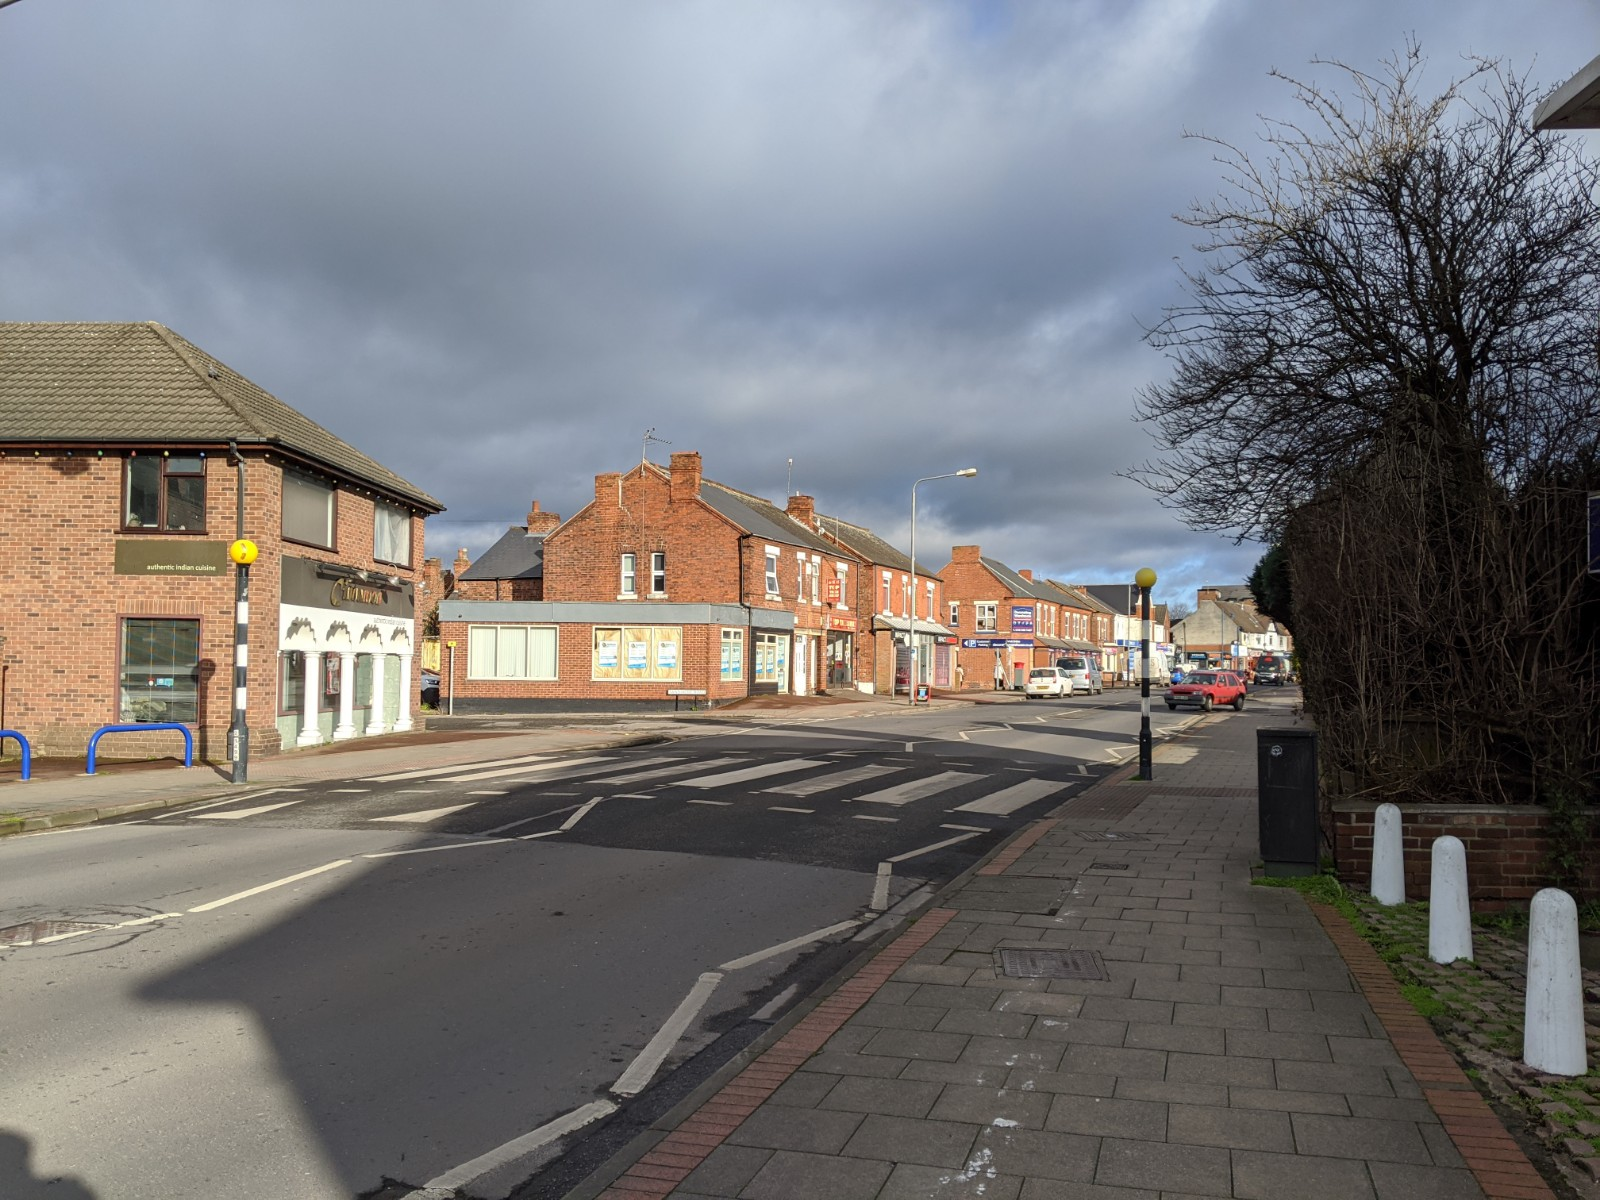 AMBITIOUS PLANS TABLED FOR STAPLEFORD REGENERATION